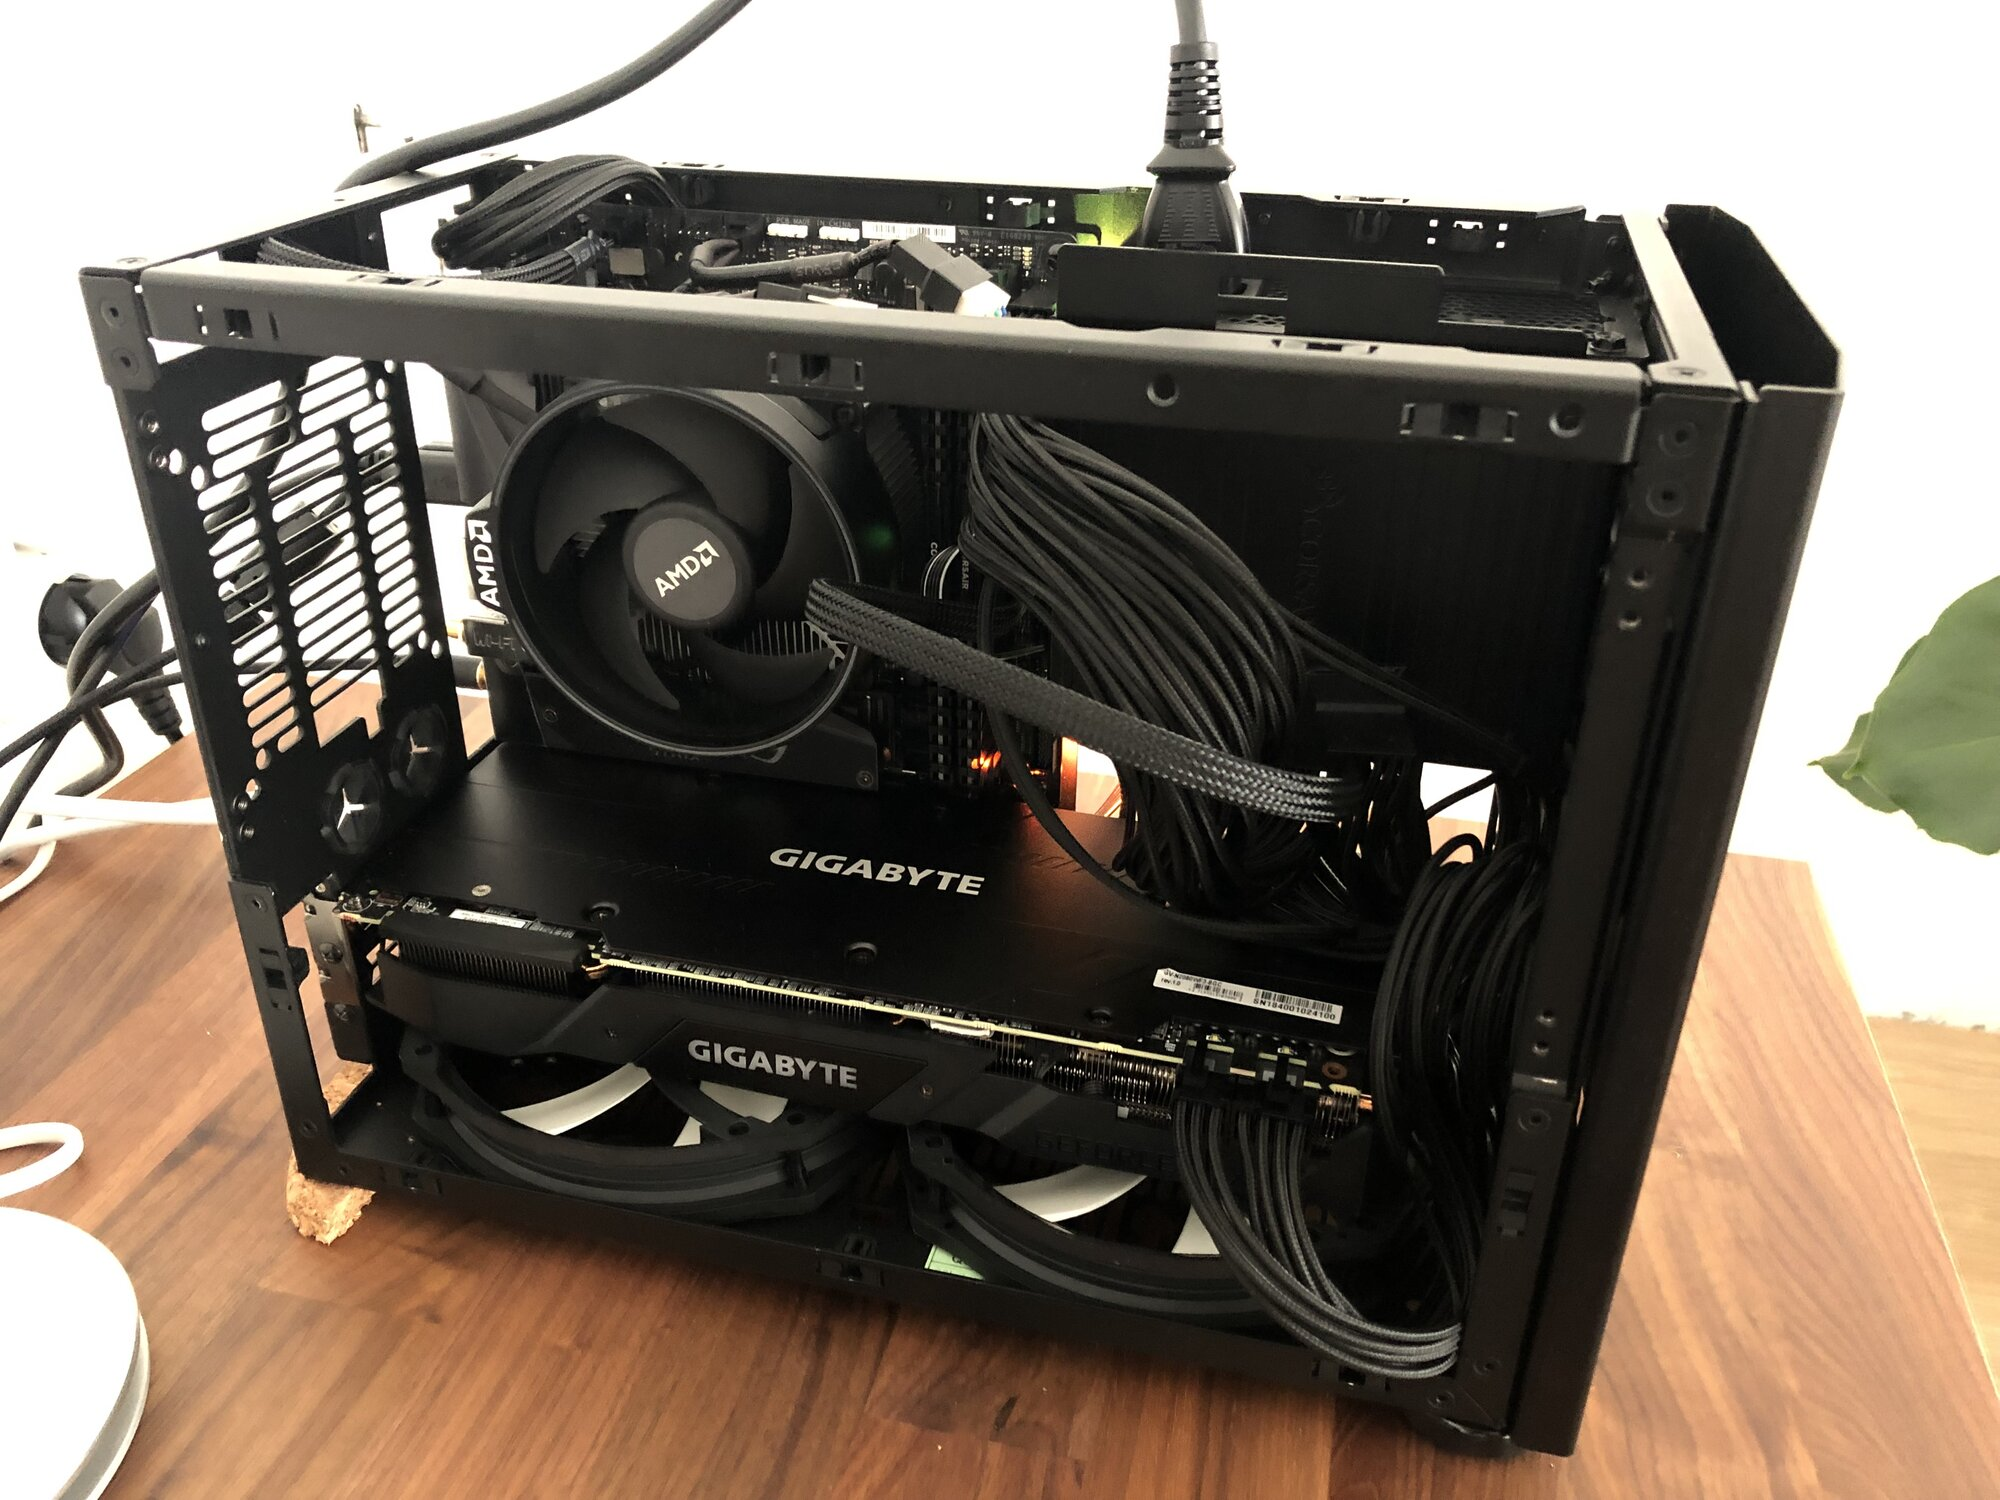 NCASE M1: a crowdfunded Mini-ITX case (updates in first post